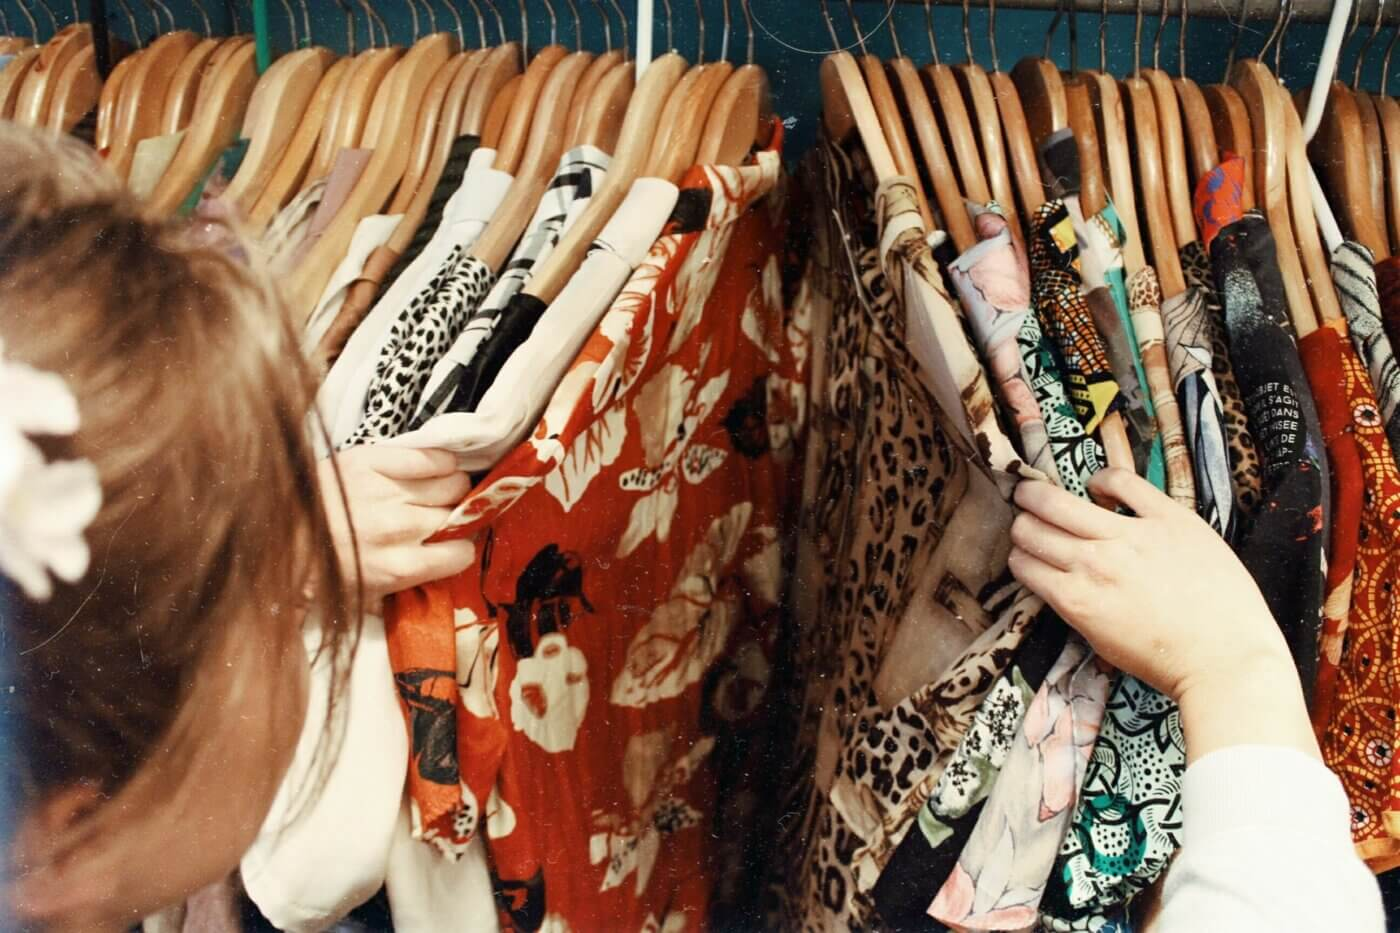 Vintage and second-hand shopping